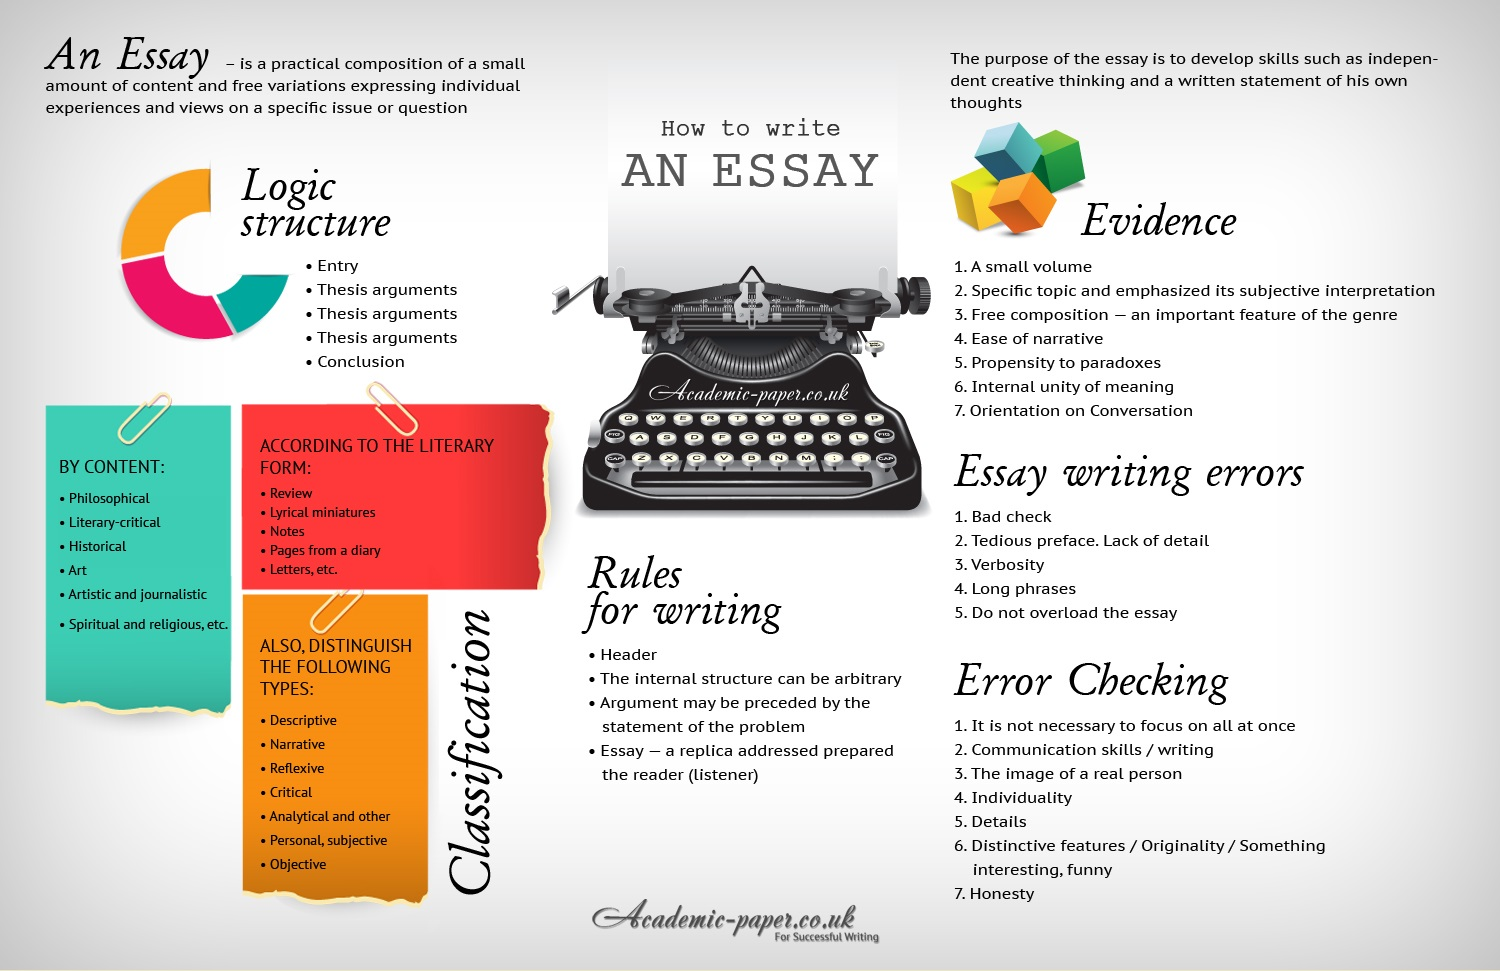 Homework essay writing